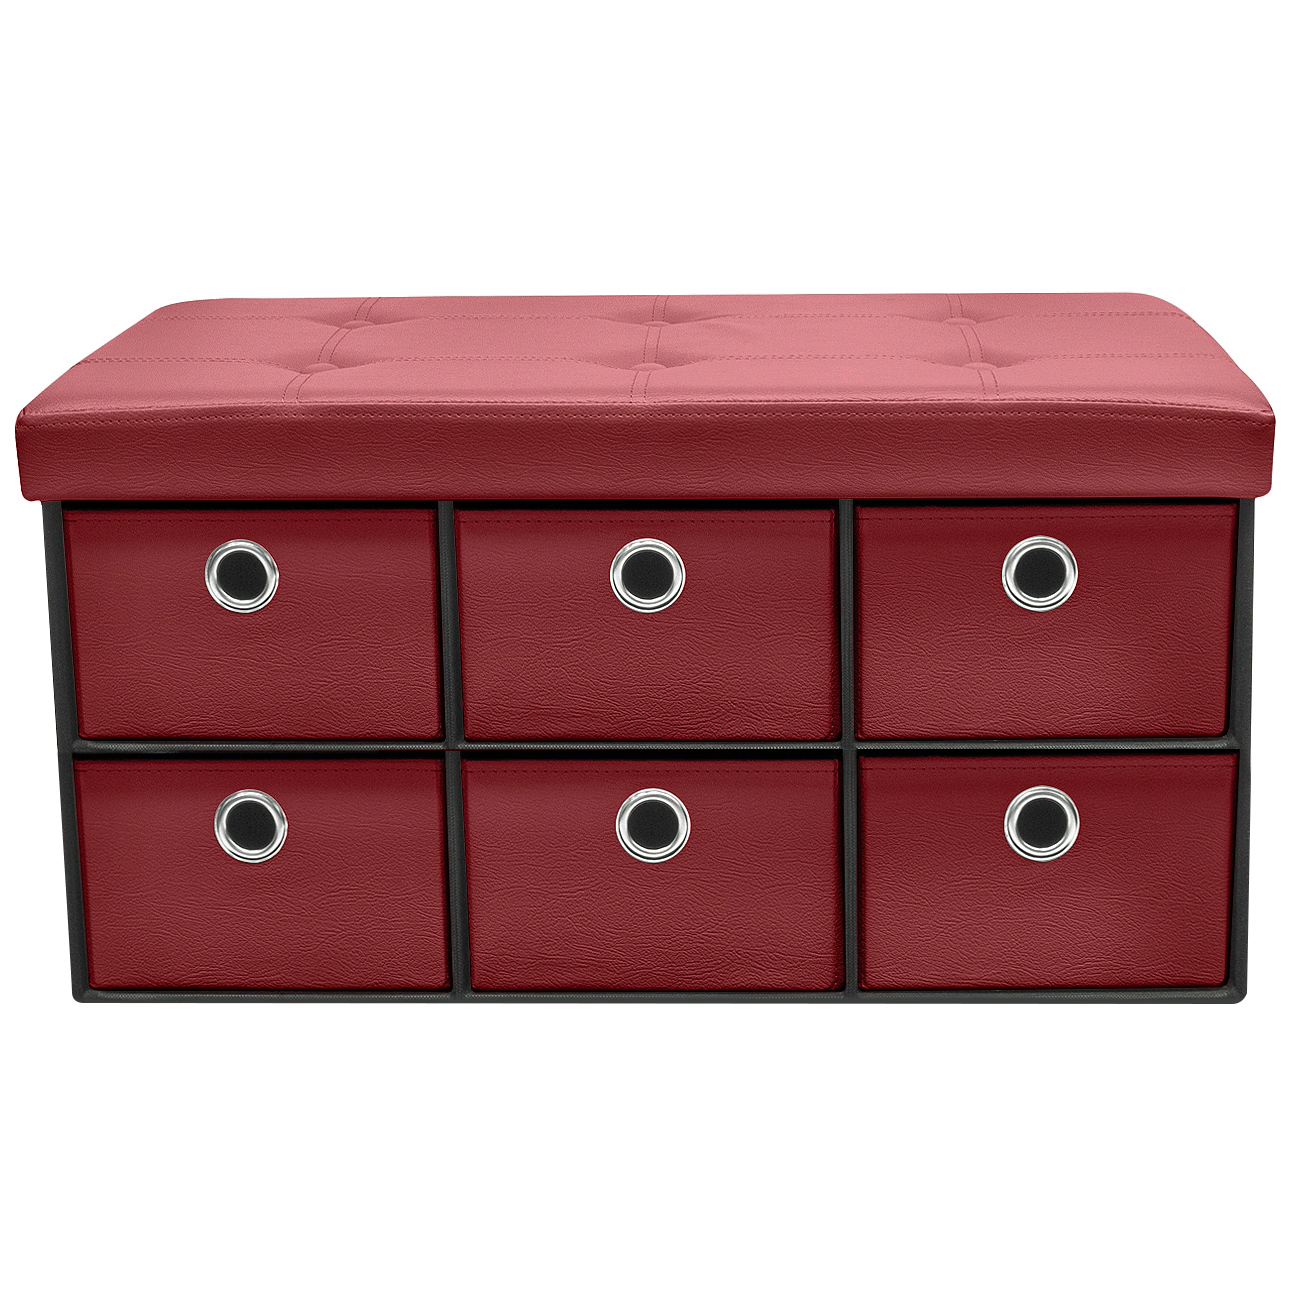 Sorbus Storage Bench Chest With Drawers Collapsible Folding Bench Ottoman With Cover Perfect For Entryway Bedroom Cubby Drawer Footstool Etc Contemporary Faux Linen Faux Leather Chocolate Walmart Com Walmart Com